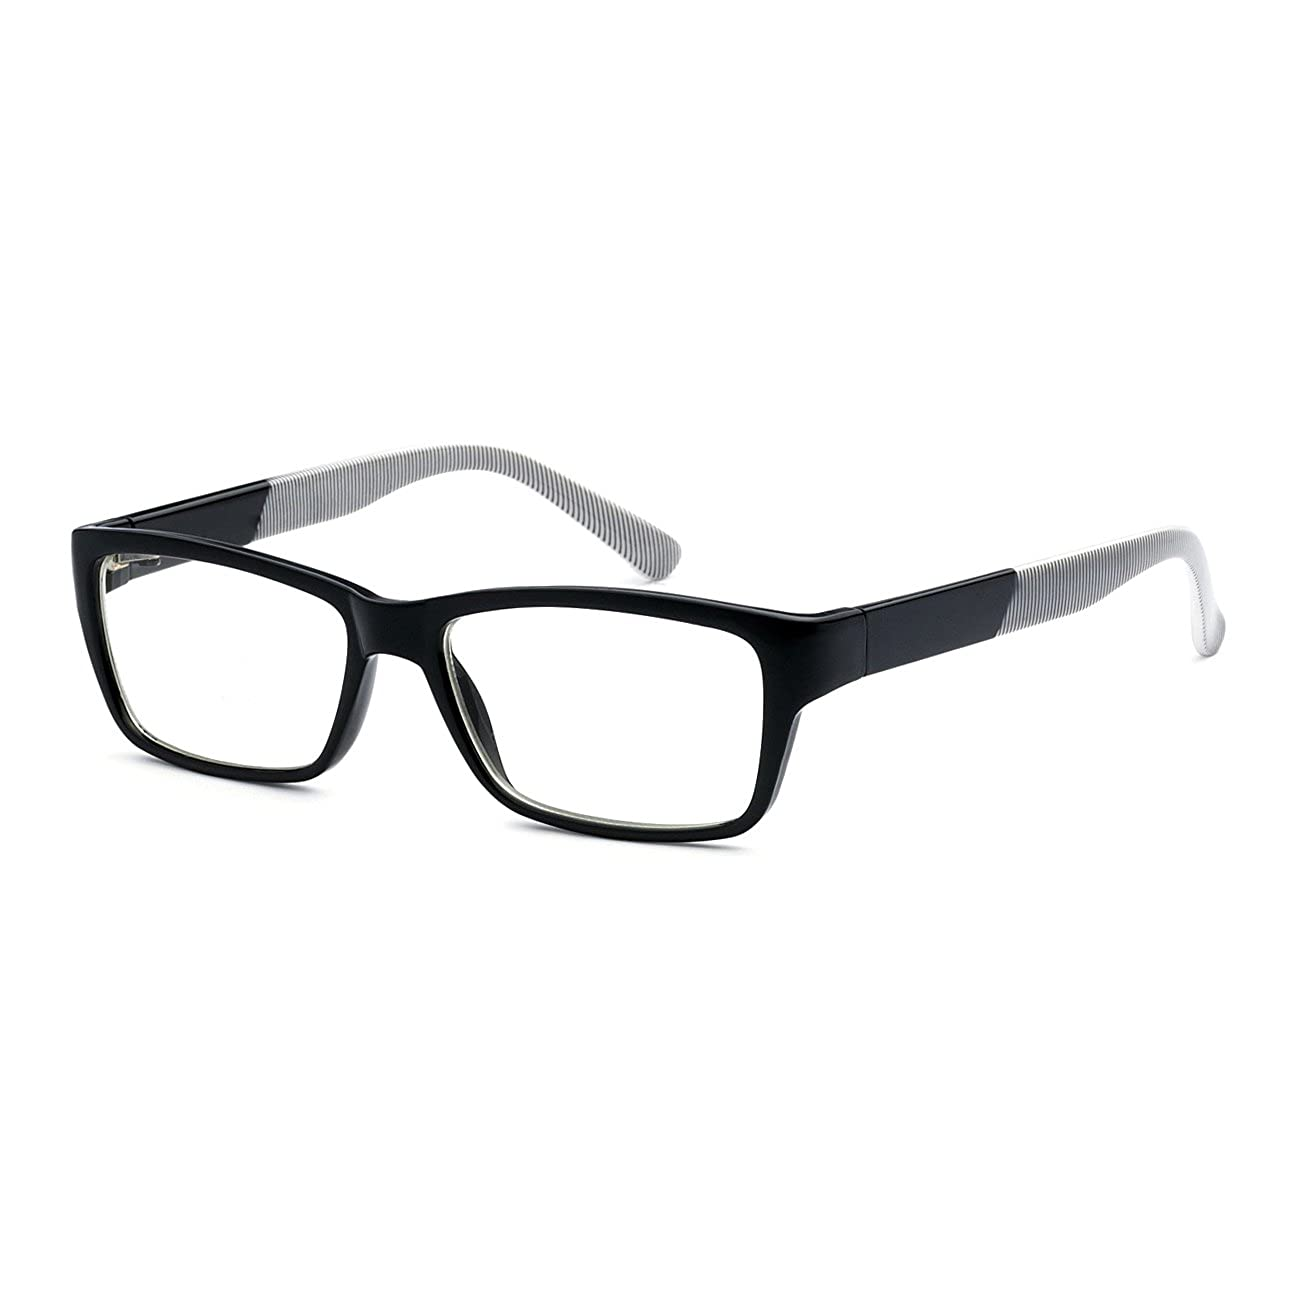 NERD Eyewear Stripe Rectangular Men Women Frame Clear Lens Eye Glasses/ BLACK